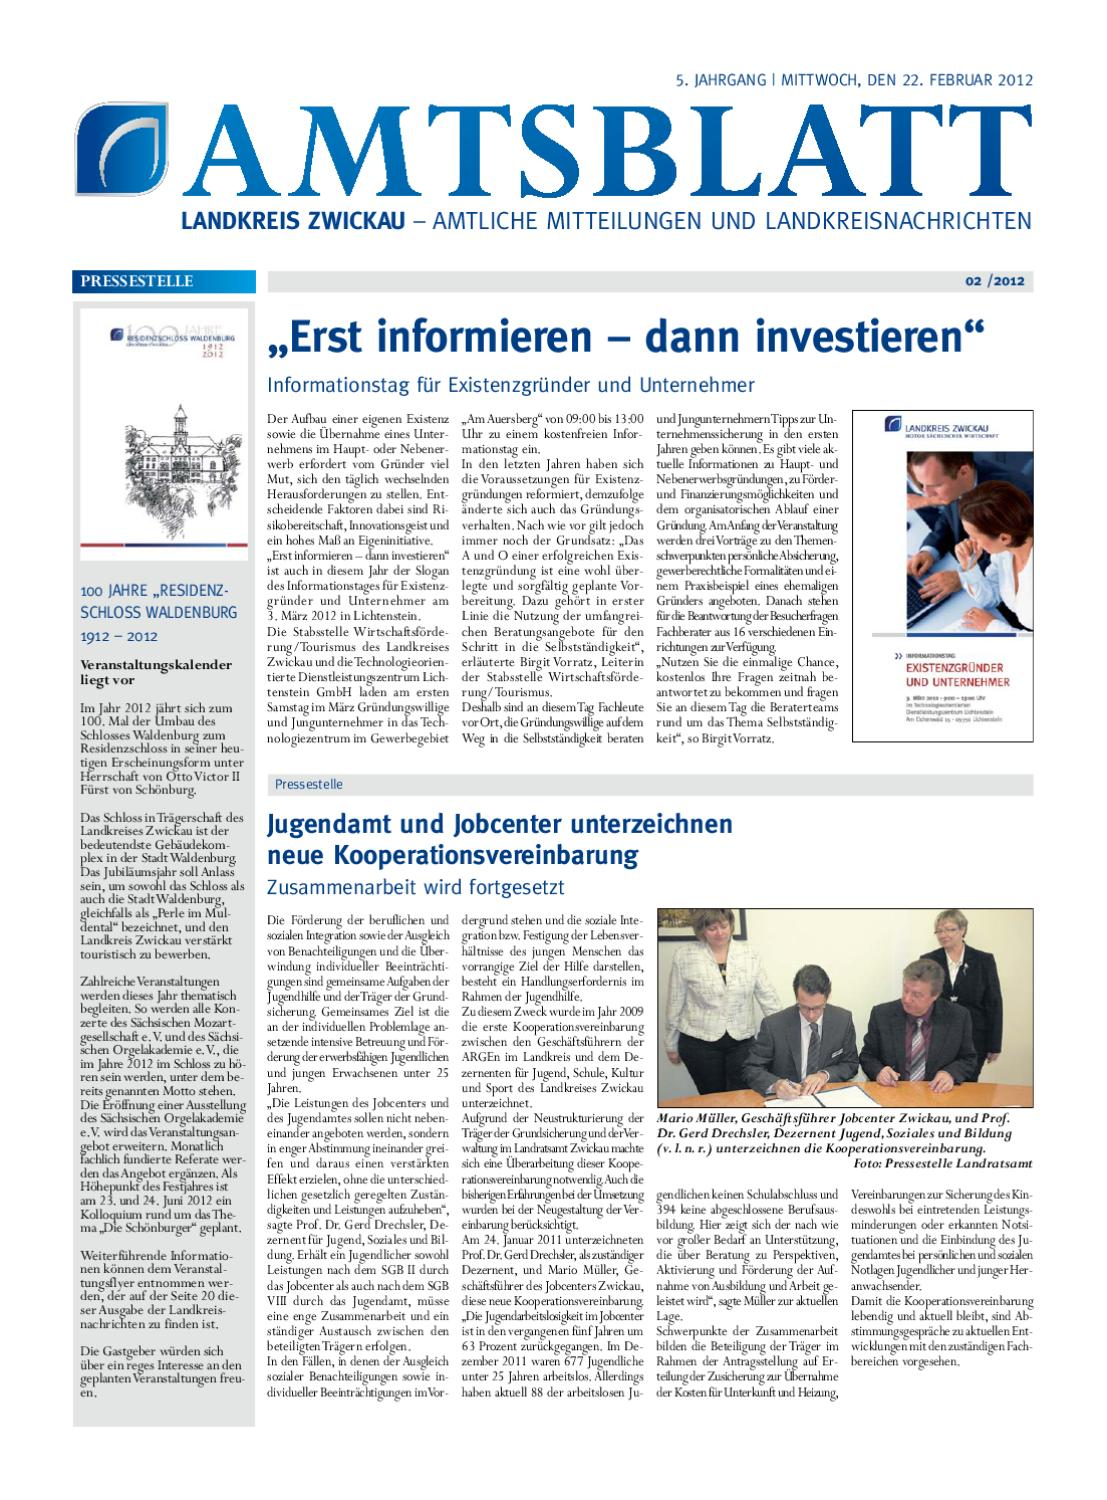 20120222_Amtsblatt_LKZ_Z by Page Pro Media GmbH - issuu